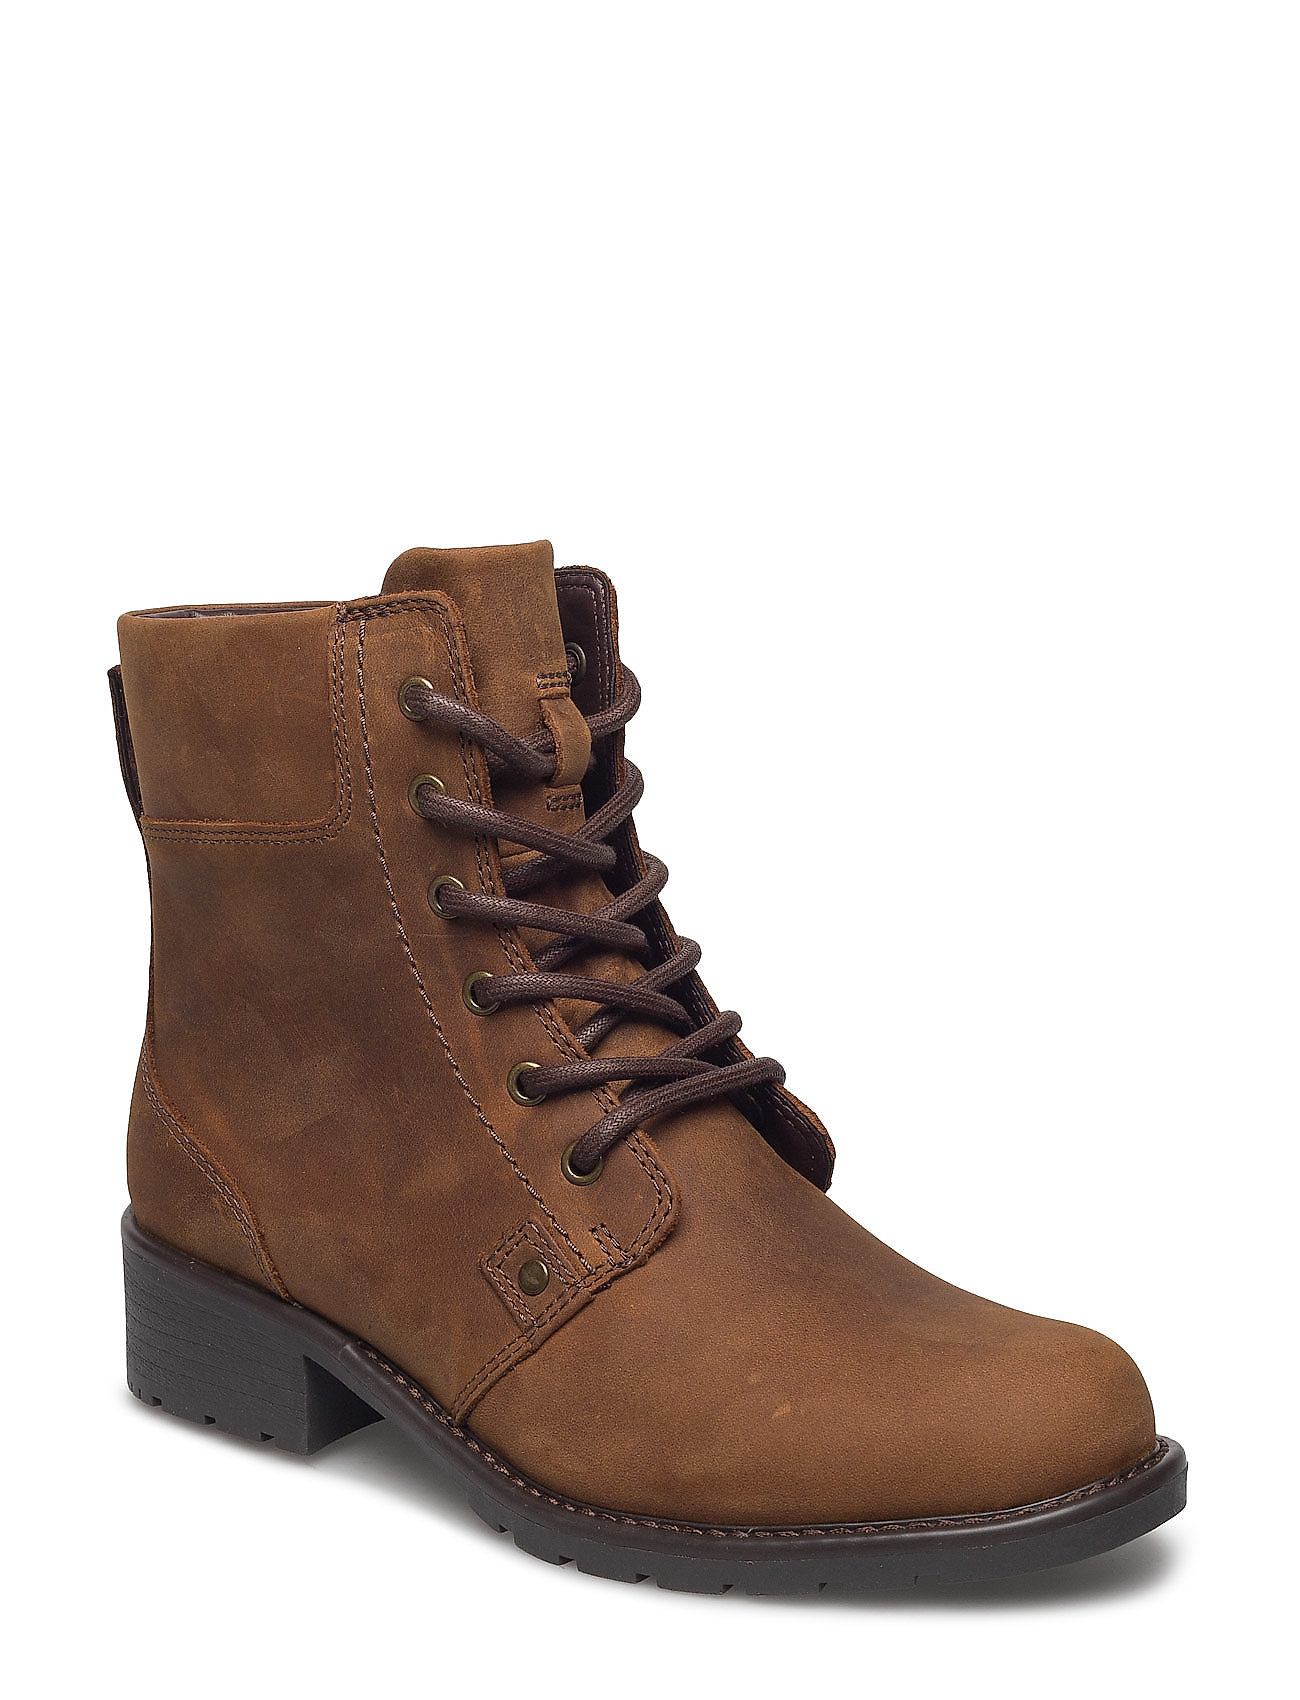 Image of Orinoco Spice Shoes Boots Ankle Boots Ankle Boot - Flat Brun Clarks (3406320289)